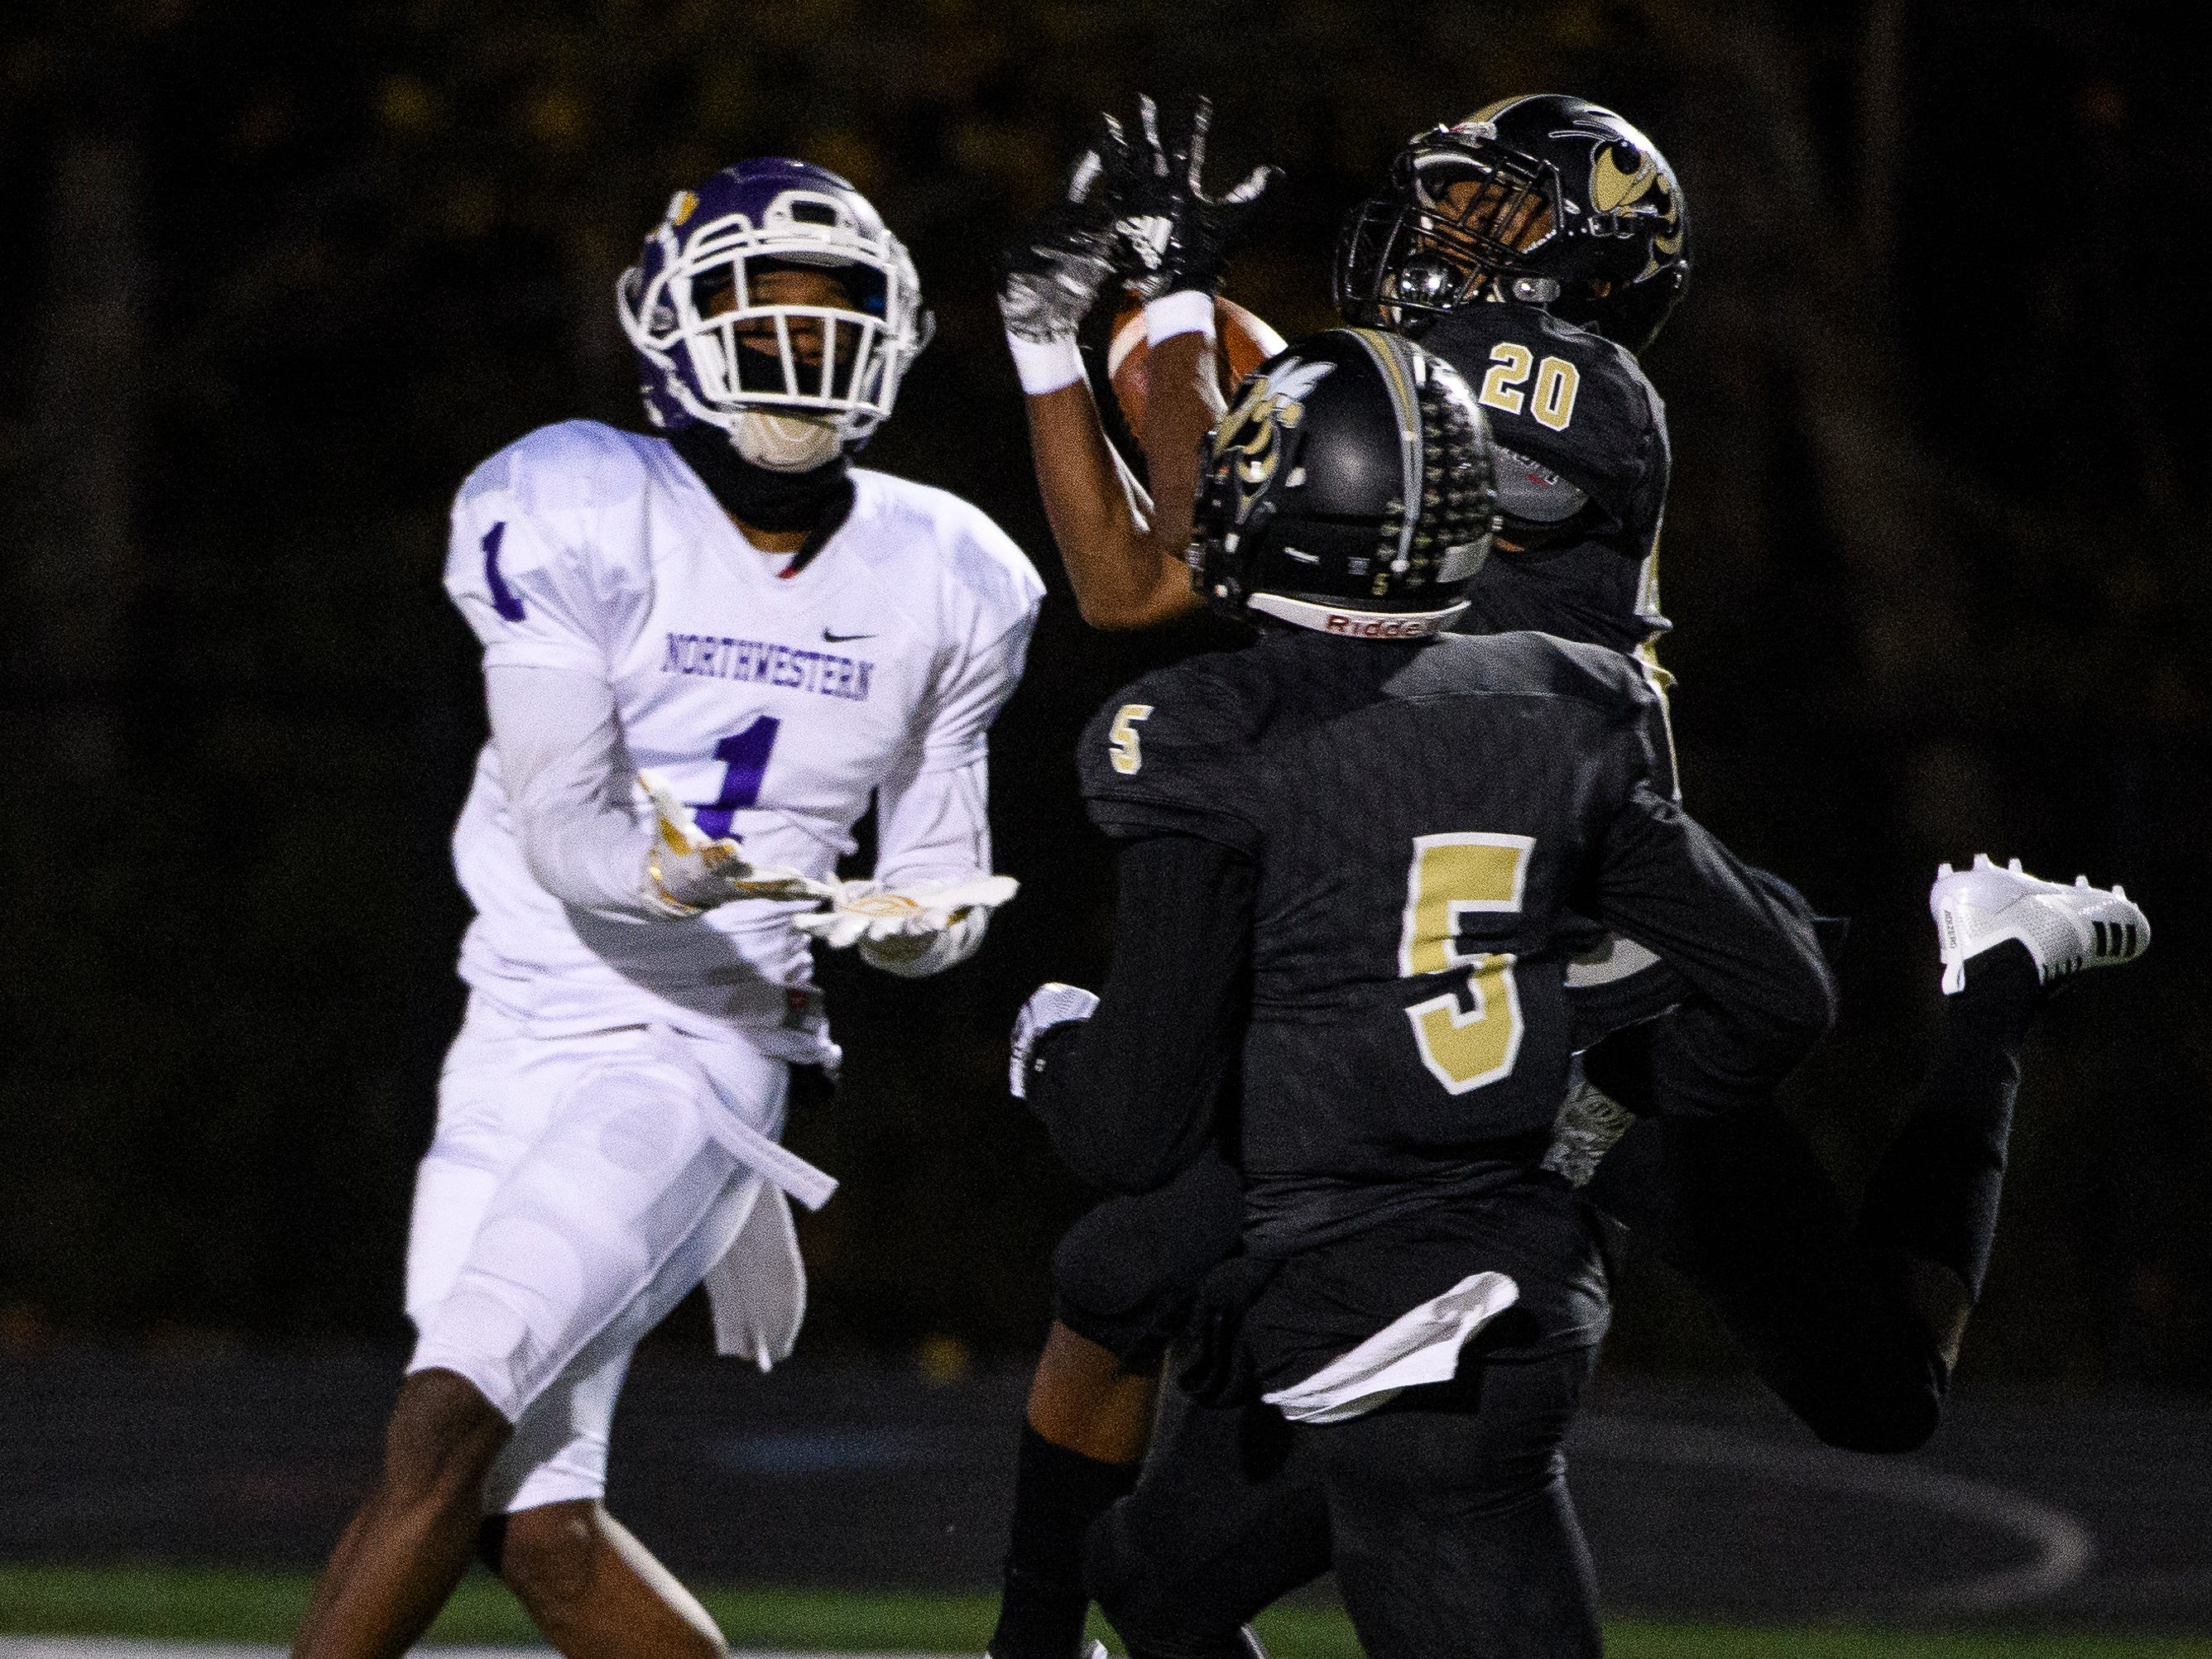 T.L Hanna's Ja'Nike Truesdale (20) intercepts a pass meant for Northwestern's Jamario Holley (1) on Friday, Nov. 16, 2018.